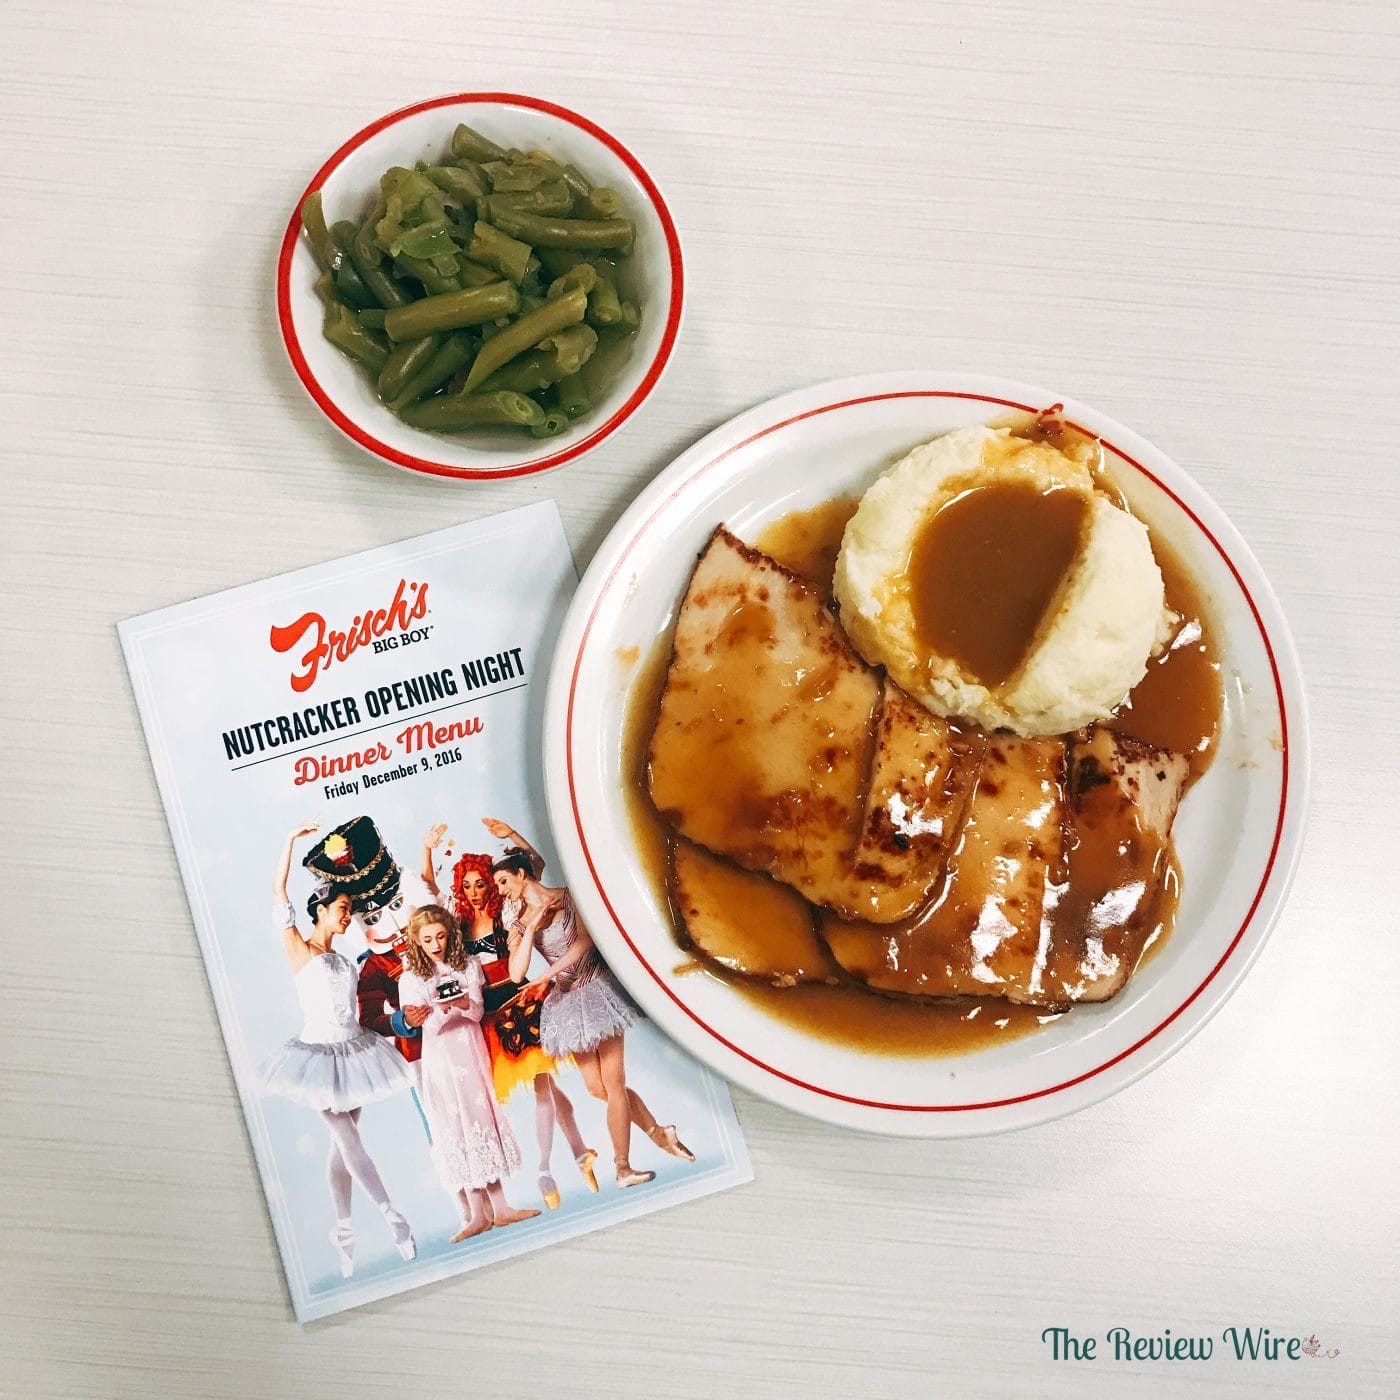 Frisch's Turkey Dinner